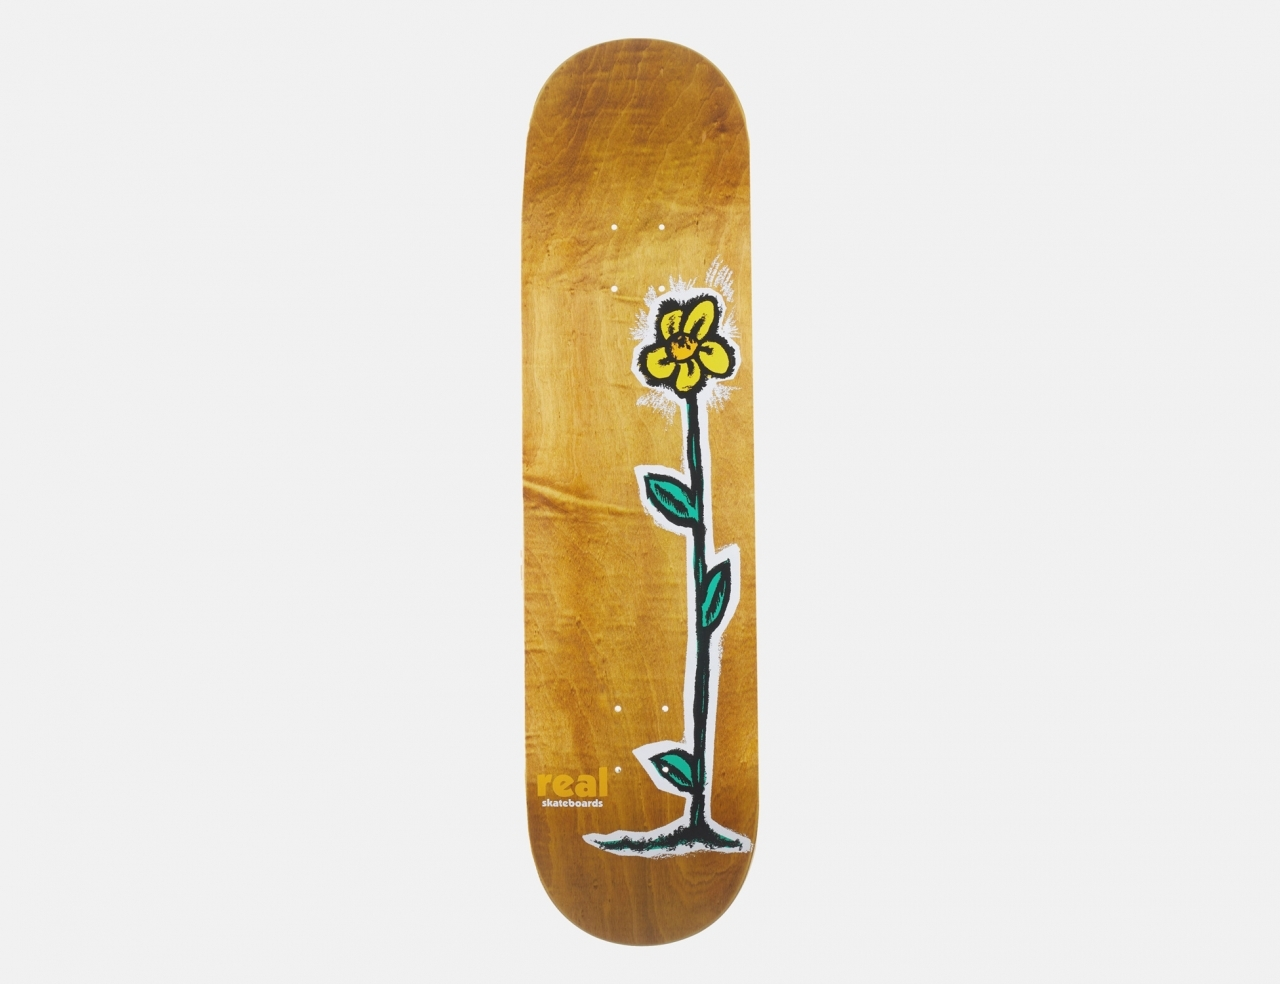 Real Team Regrowth 8.25 Deck